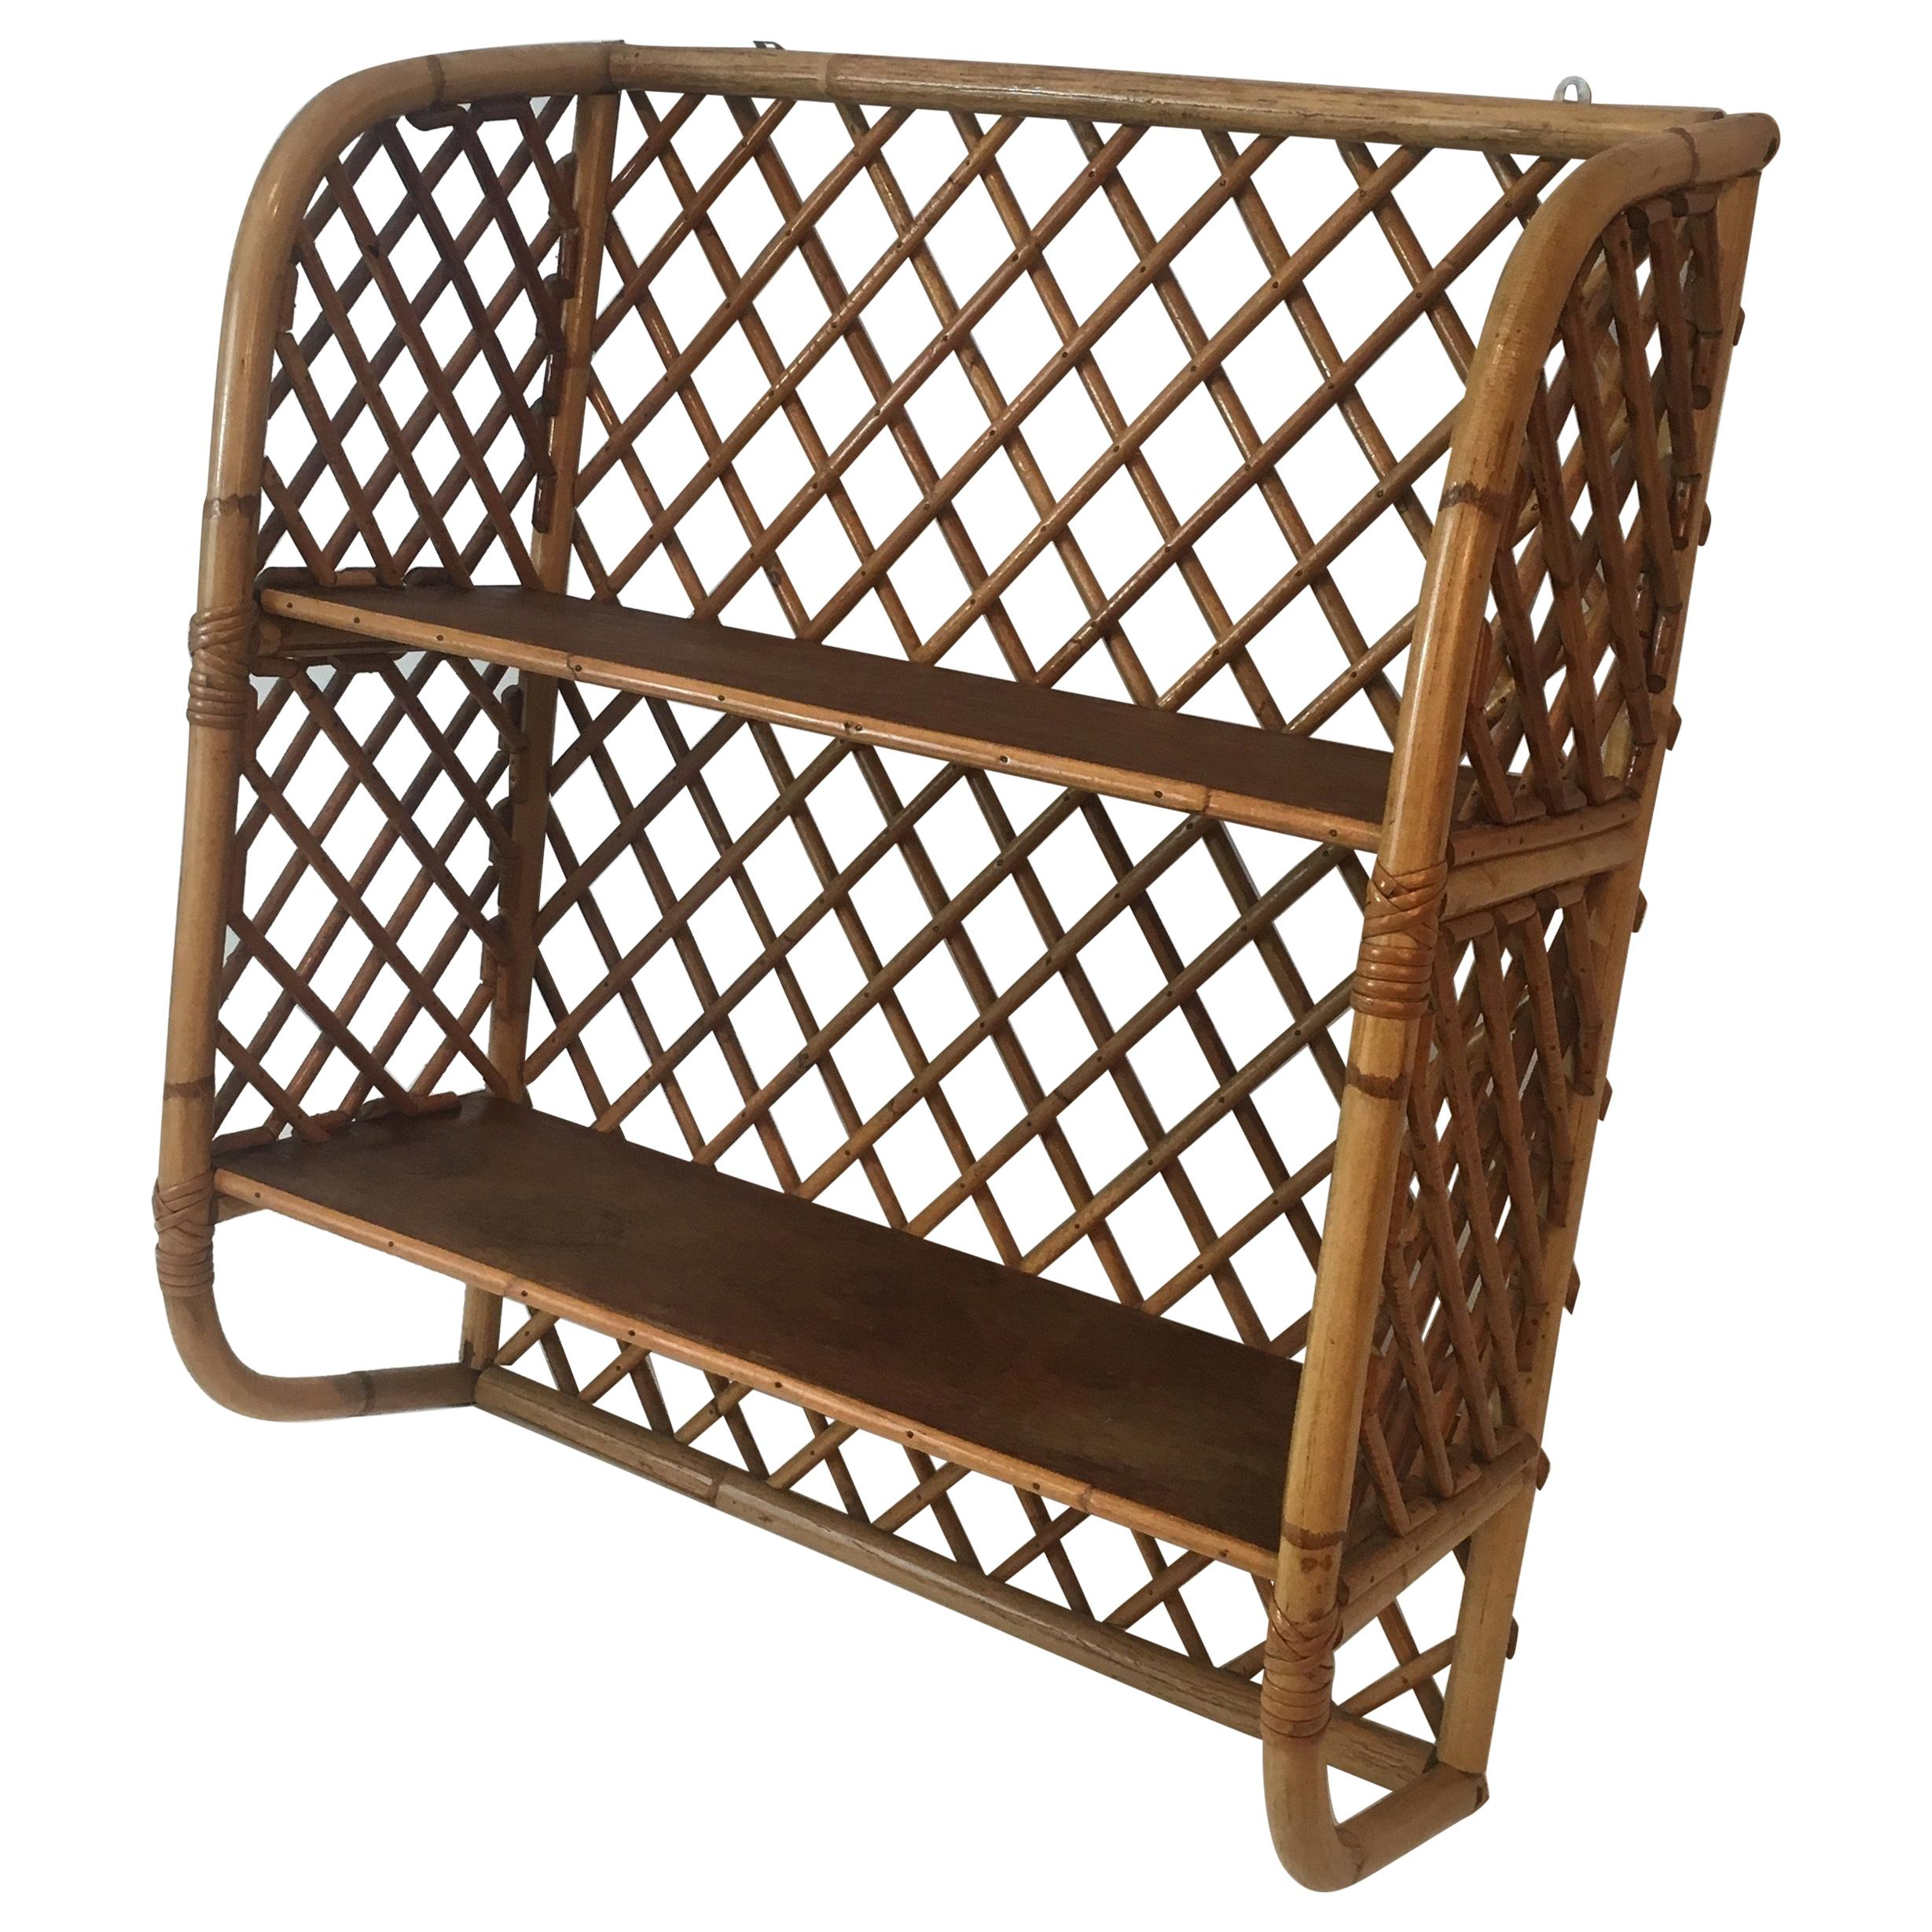 Attributed to Audoux Minet, Rattan and Wood Wall Shelves, French, circa 1950